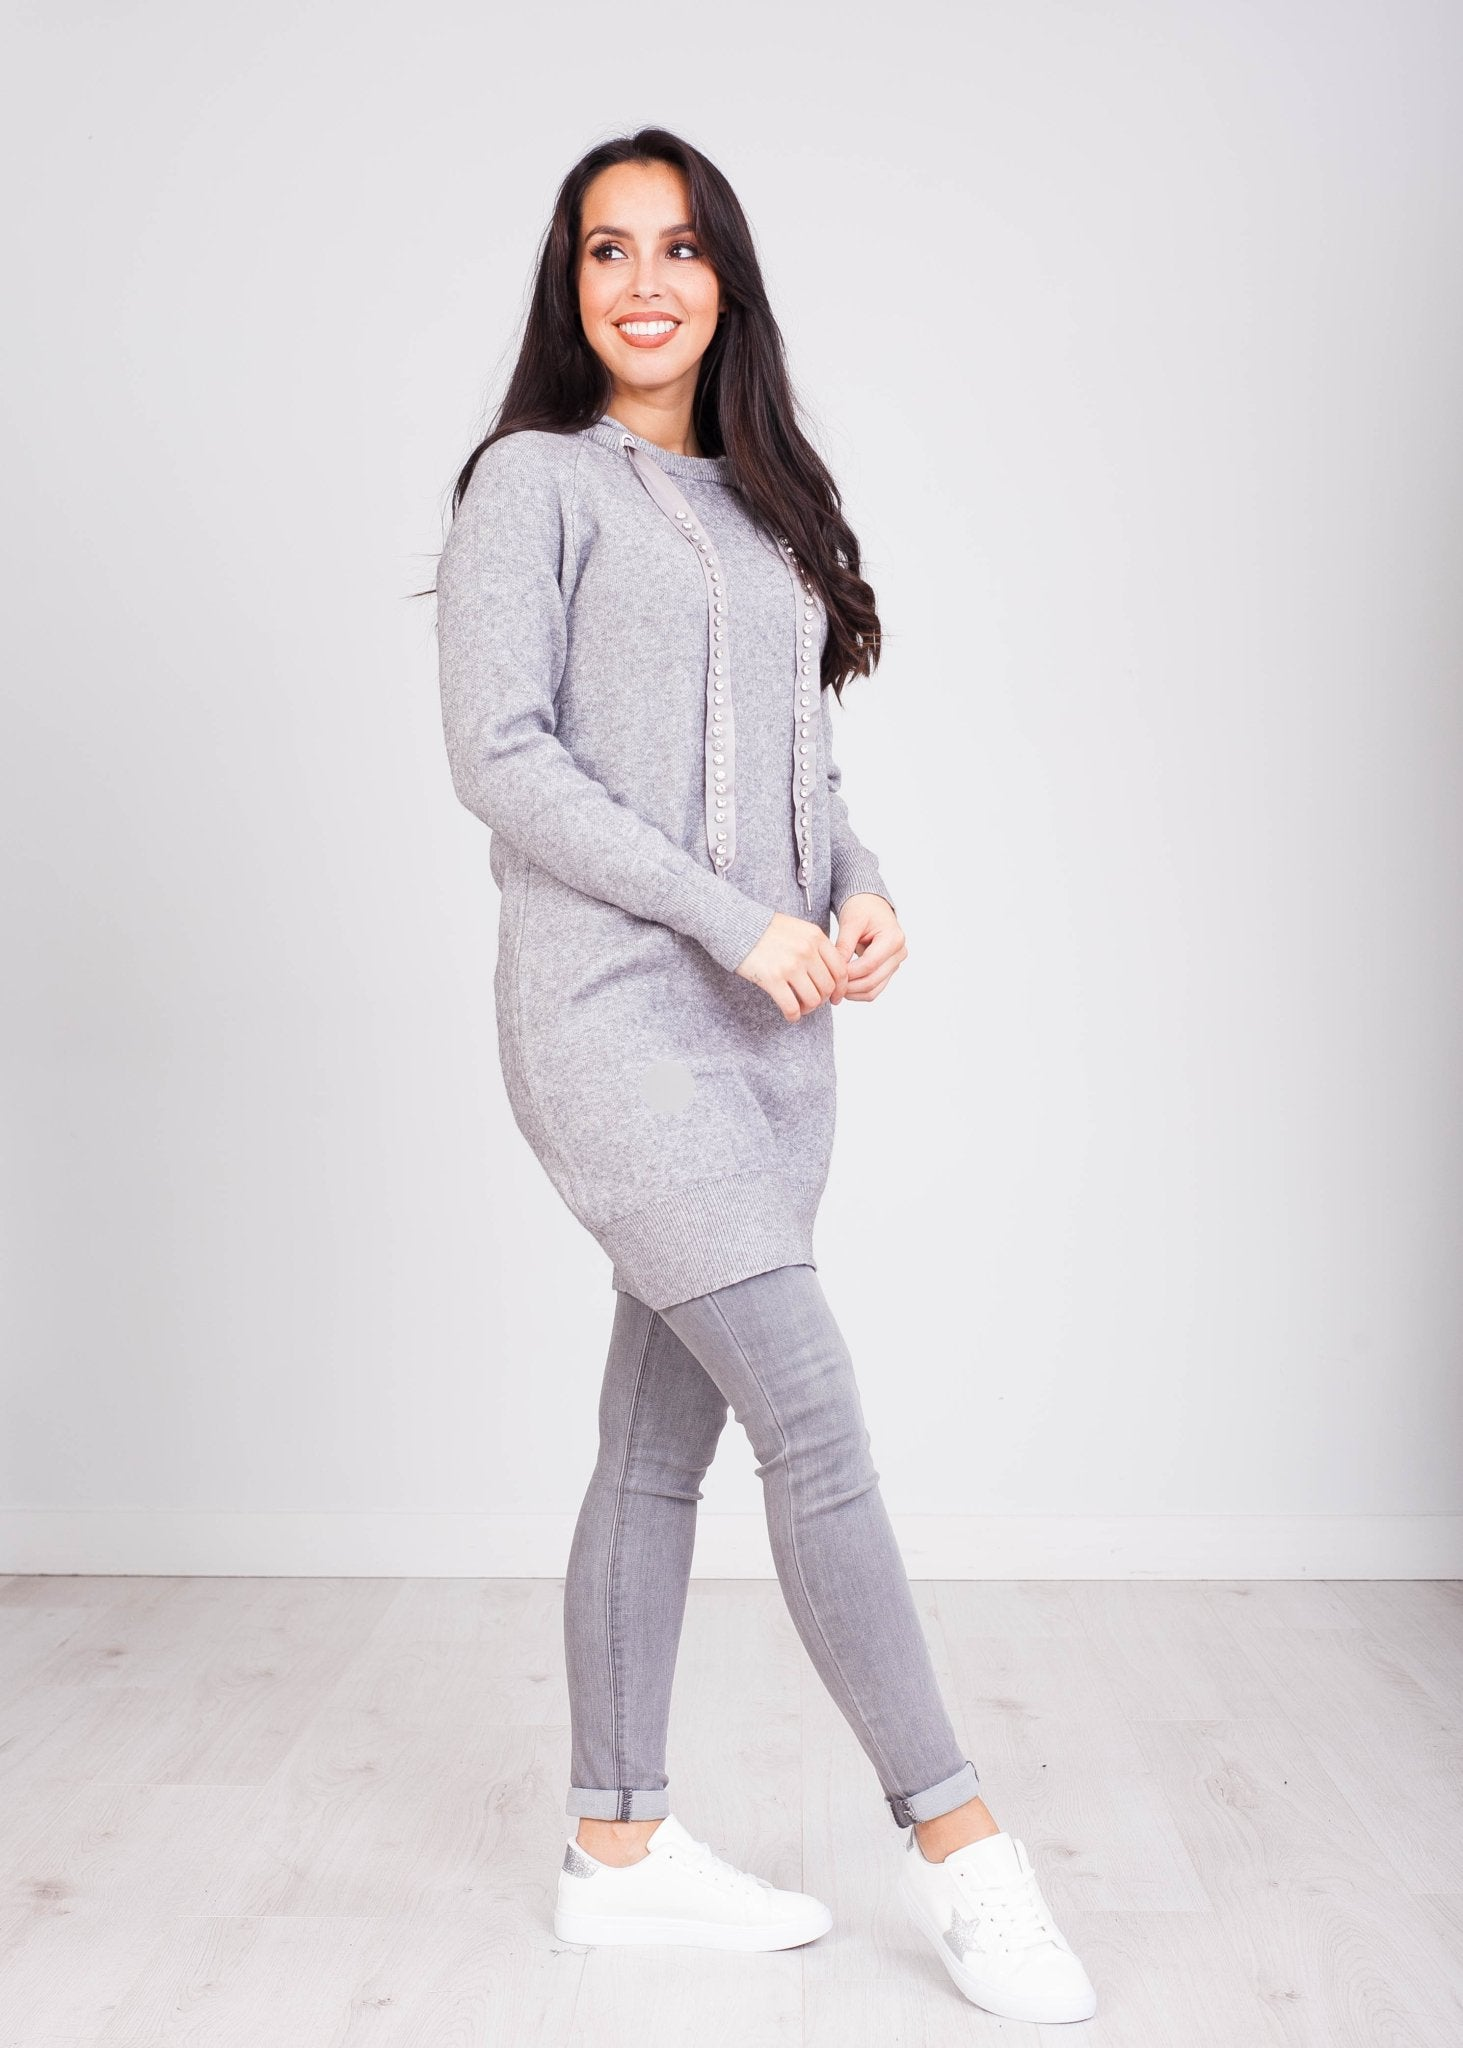 Priya Grey Hoodie Dress with Jewels - The Walk in Wardrobe